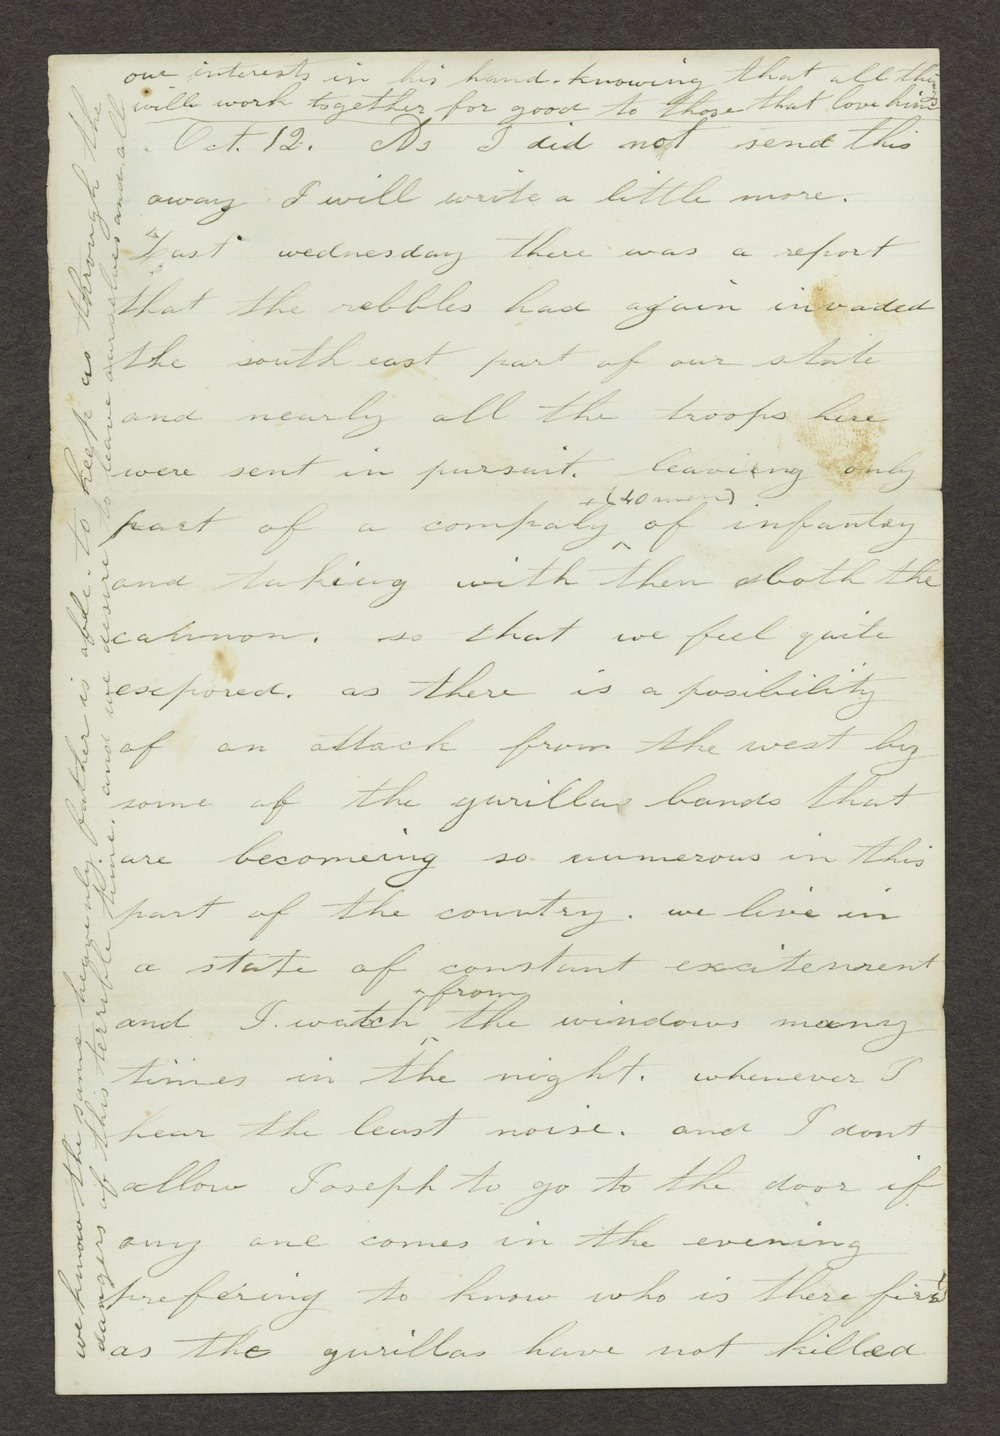 Mary Savage correspondence - 5